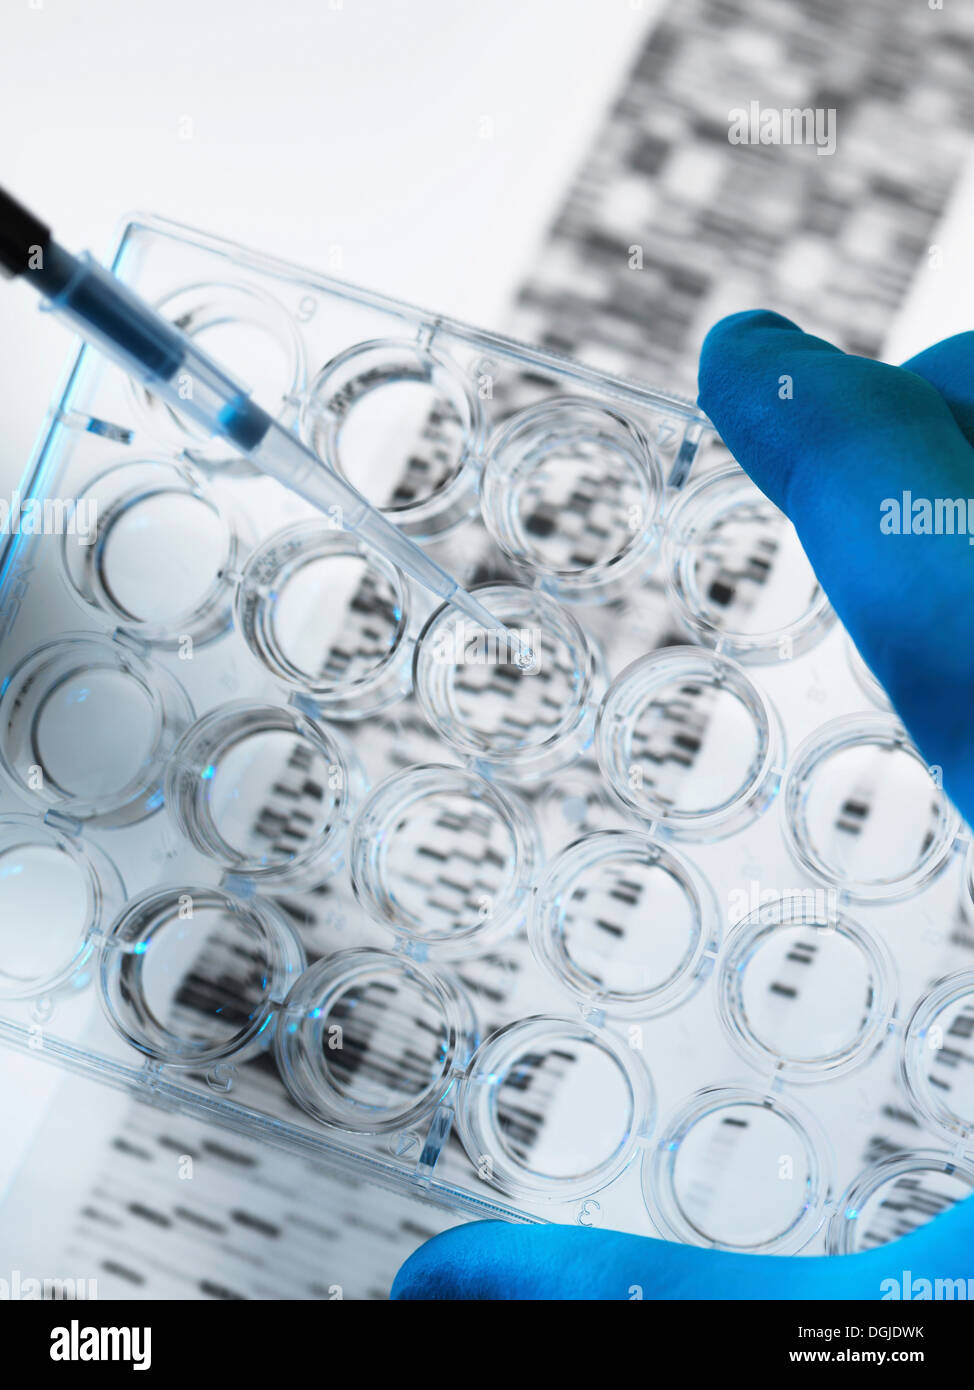 DNA sample being pipetted into multi well plate with DNA gel below - Stock Image